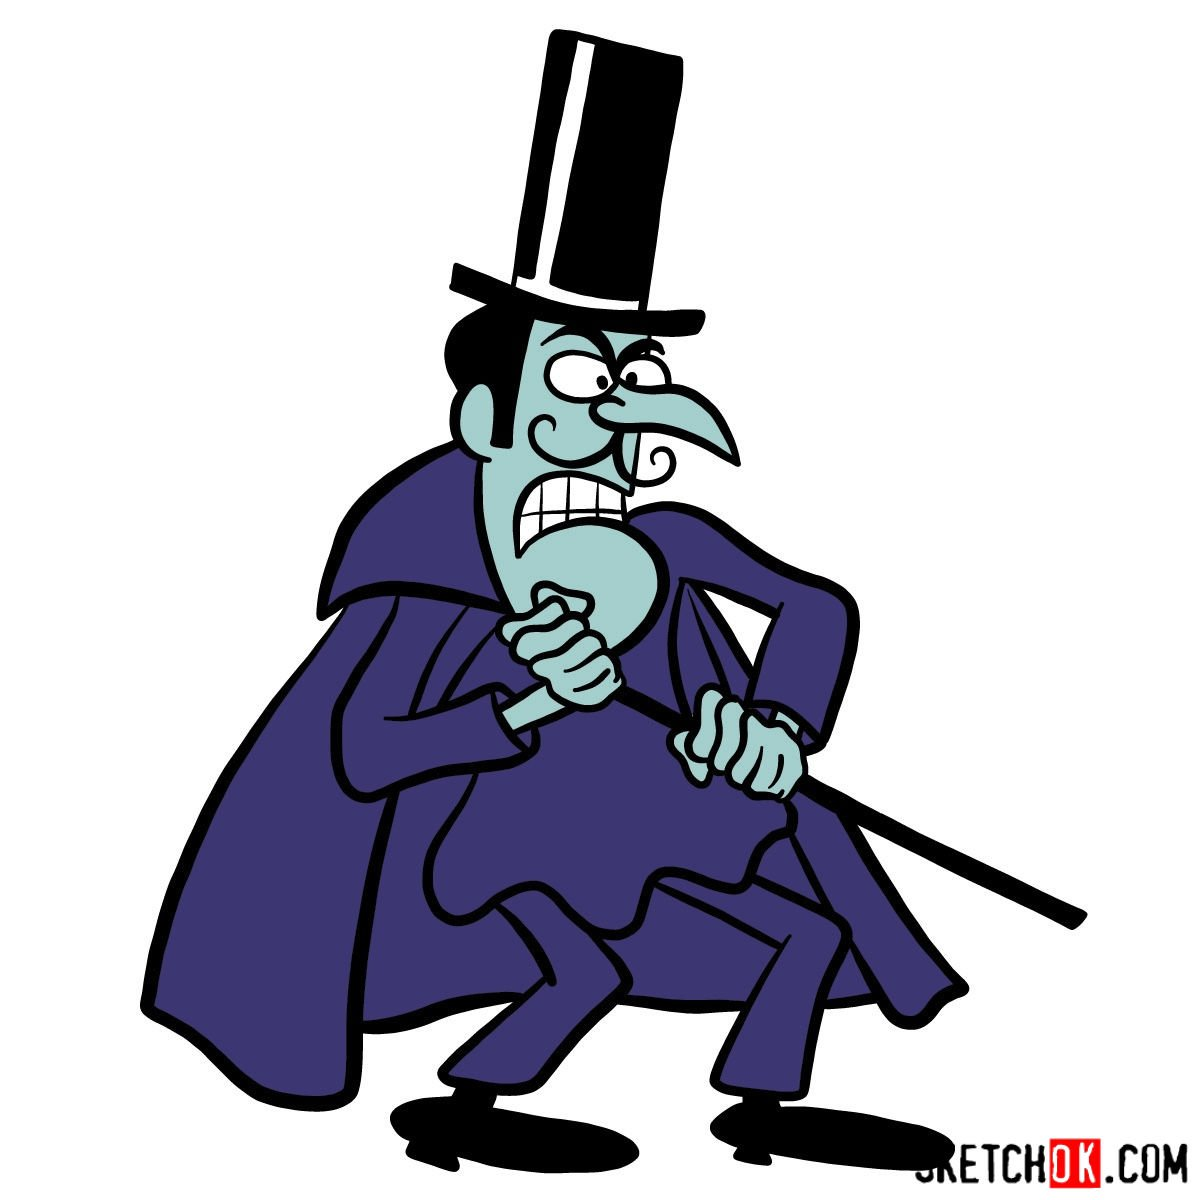 How to draw Snidely Whiplash